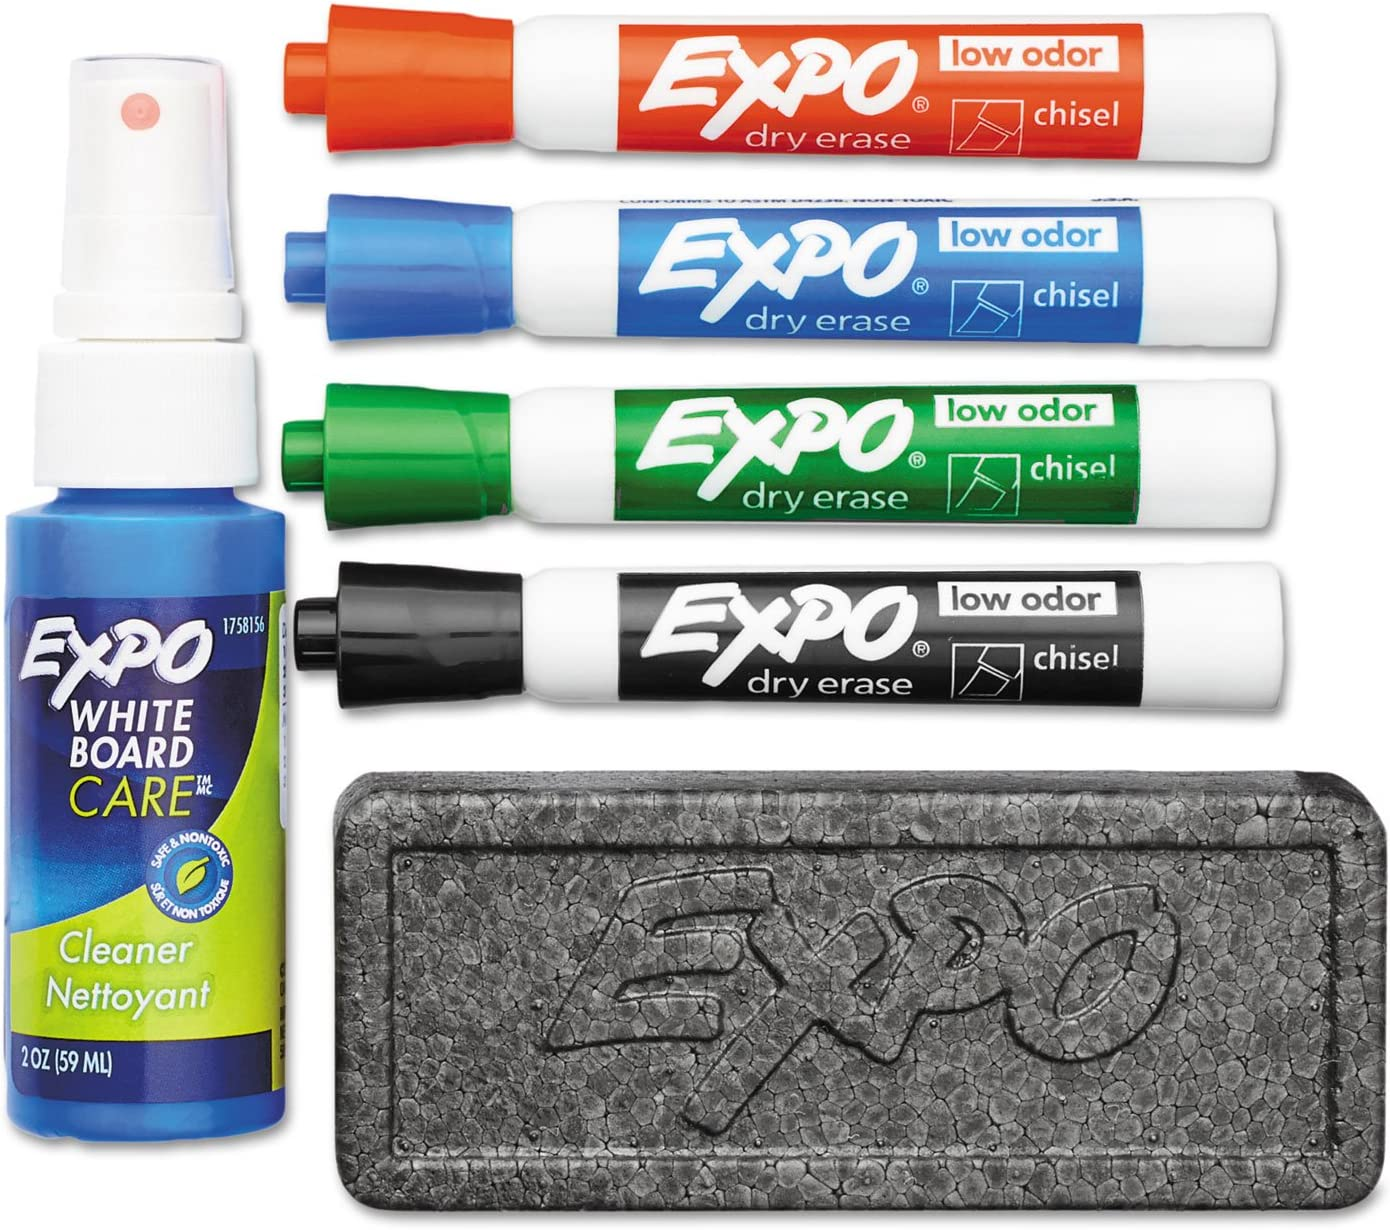 EXPO 80653 Low Odor Dry Erase Marker Starter Set Chisel Assorted 4/Set